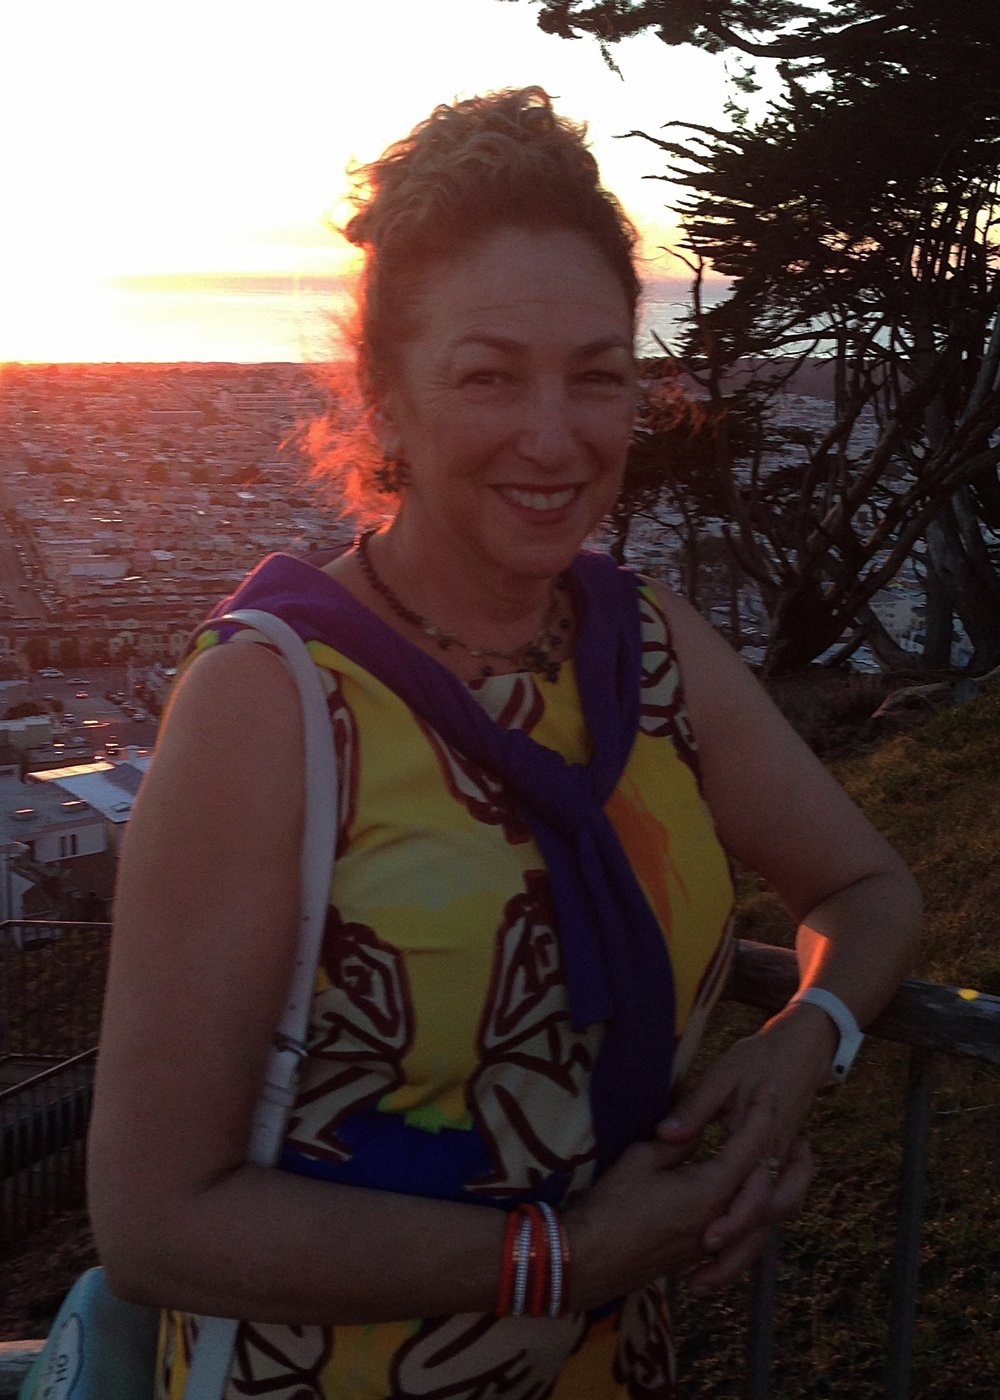 Sunset walk for inspiration in the hood, in San Francisco, CA. I'm big on urban hiking. I'm wearing one of my art dresses too.